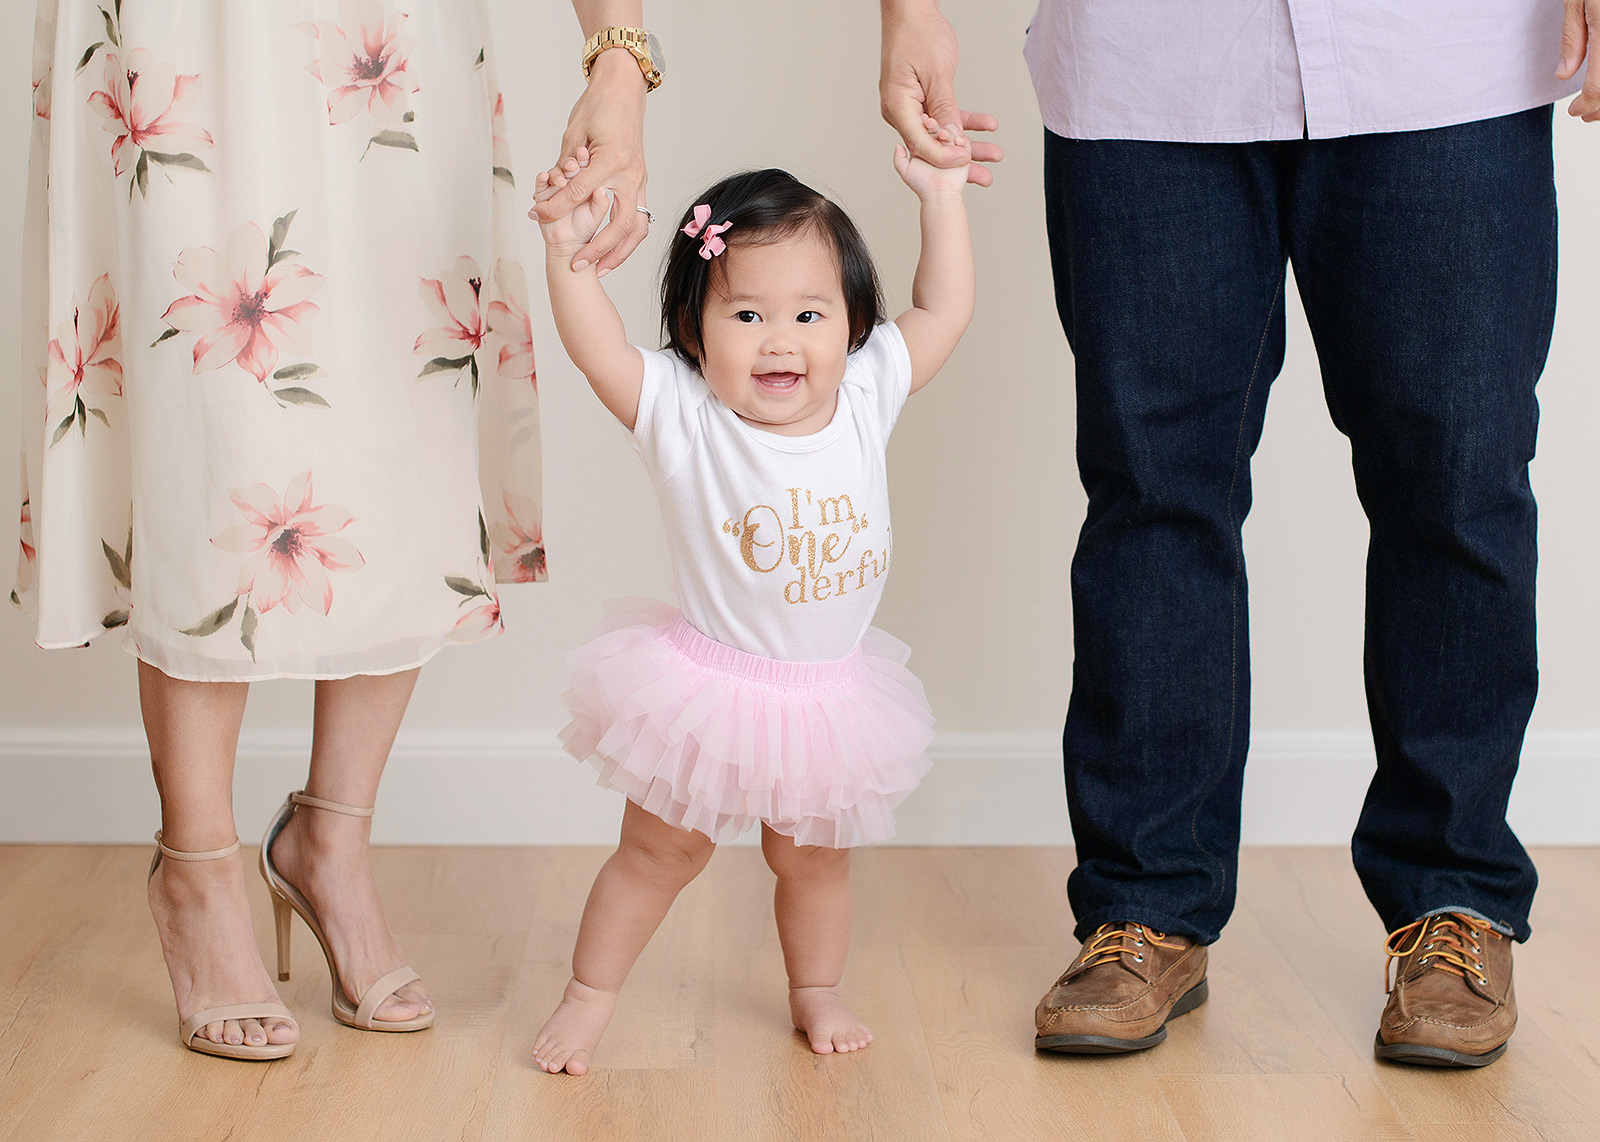 Baby girl in pink tutu being assisted by mom and dad to stand